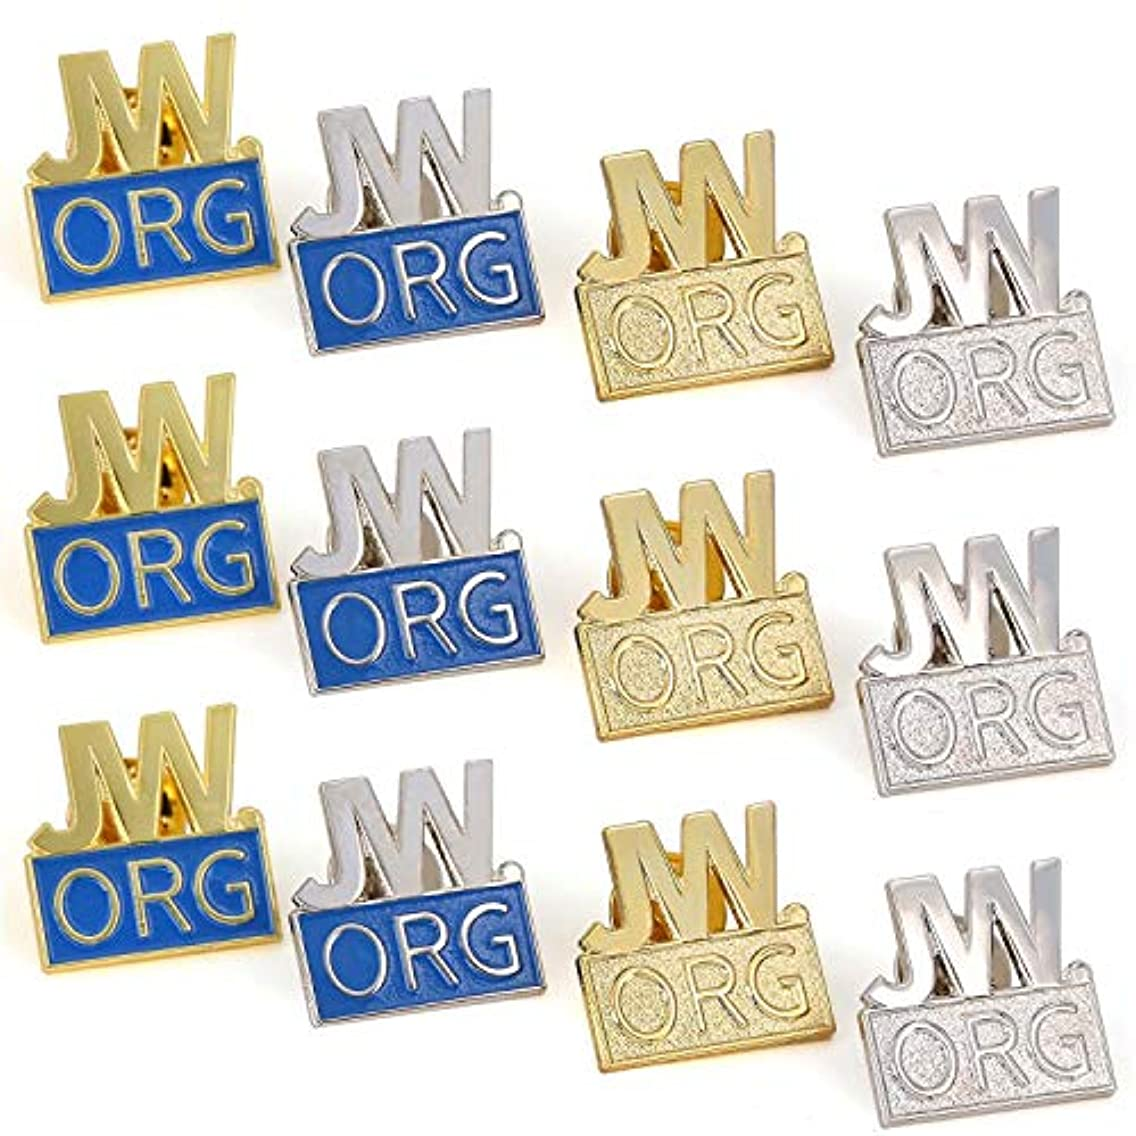 12 Pack JW.org Pin Made by Solid Metal Toned Into Gold Or Silver Great Jw.org Presents for Jehovah's Witnesses